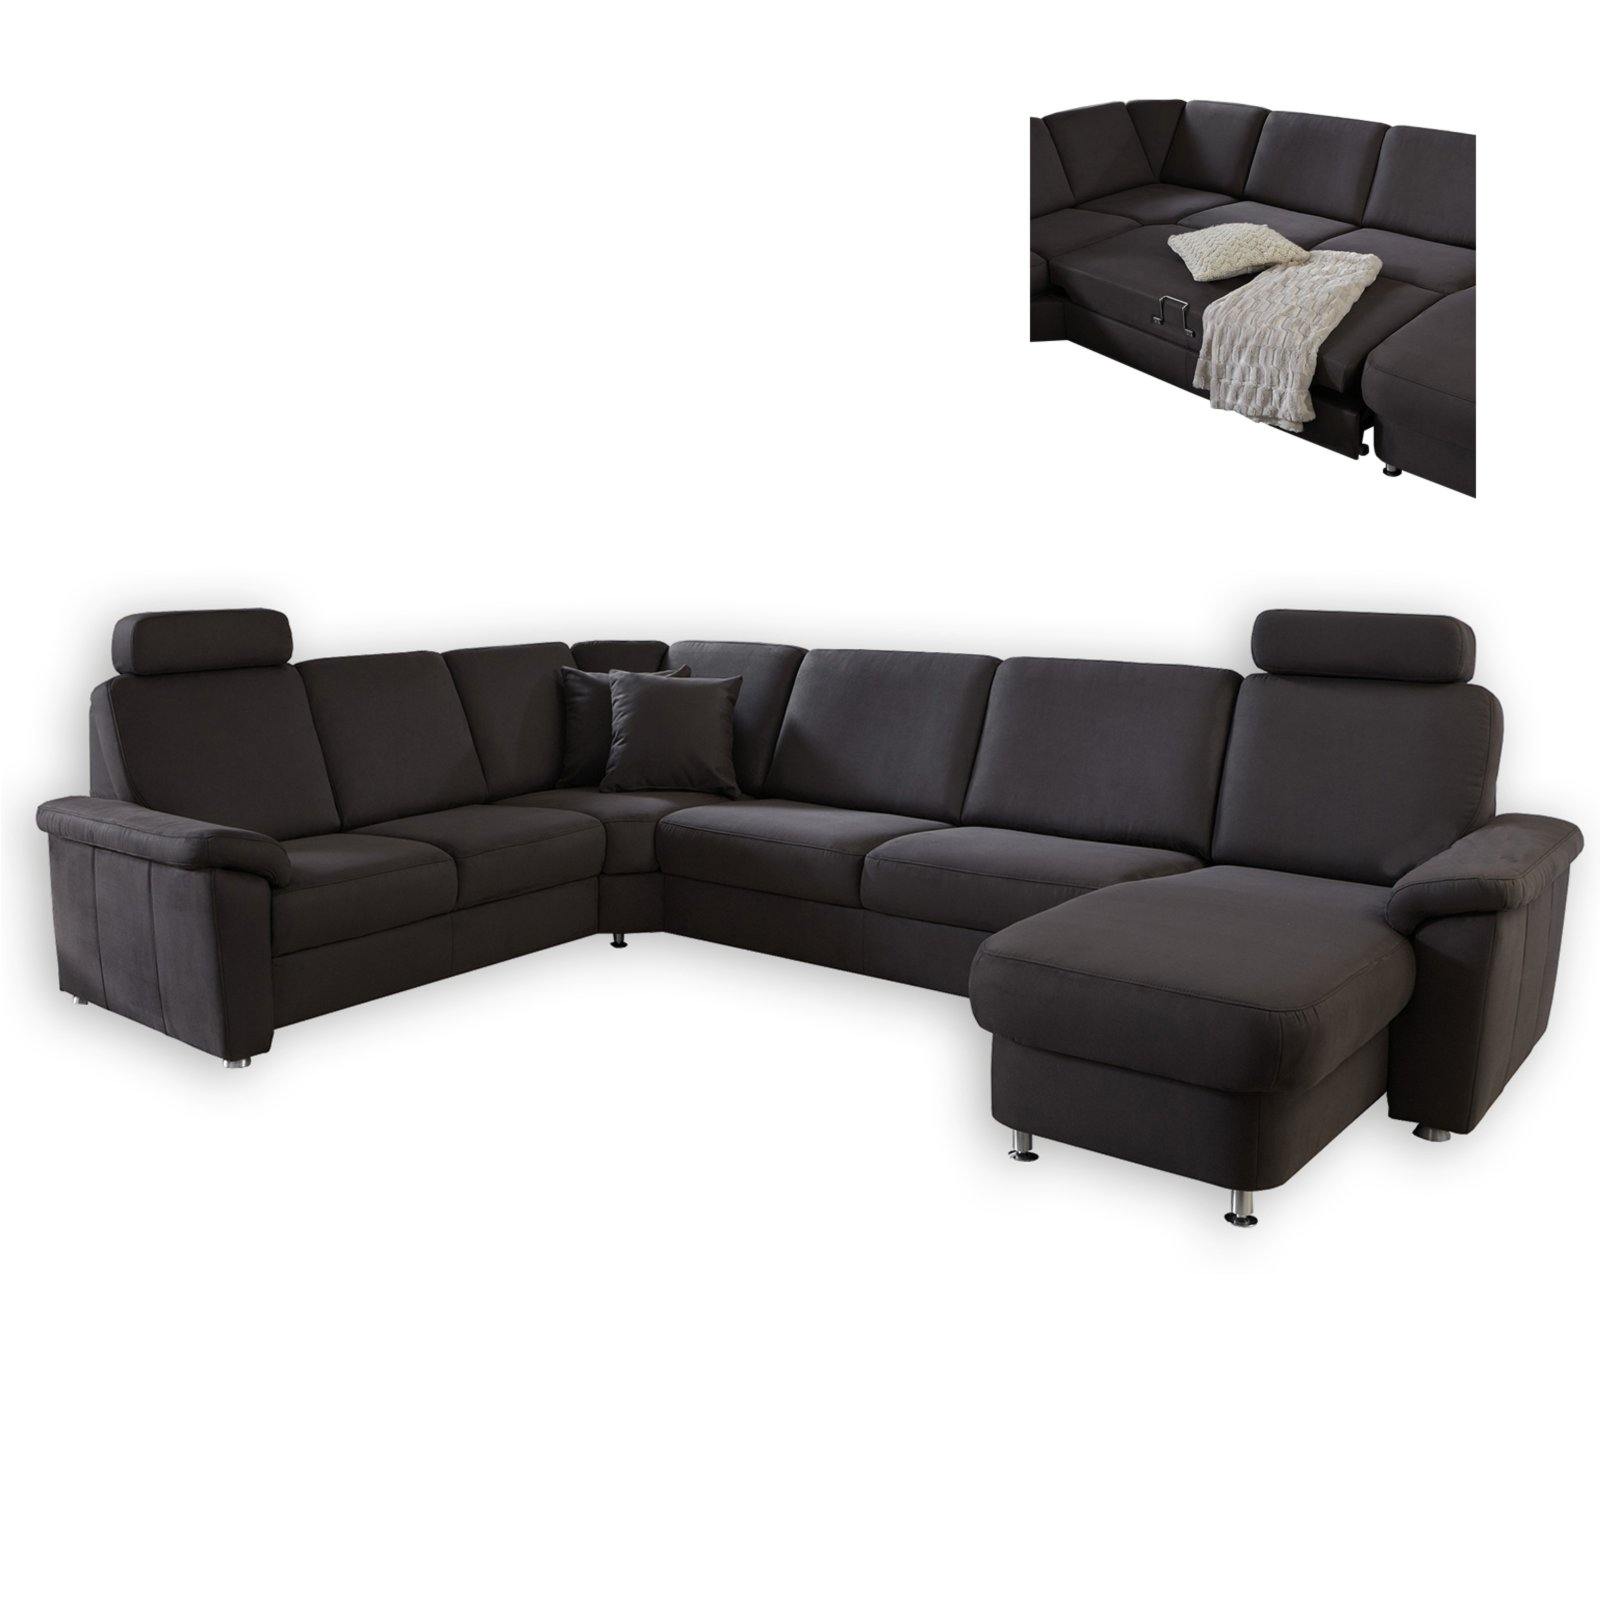 wohnlandschaft braun liegefunktion wohnlandschaften u form sofas couches m bel. Black Bedroom Furniture Sets. Home Design Ideas